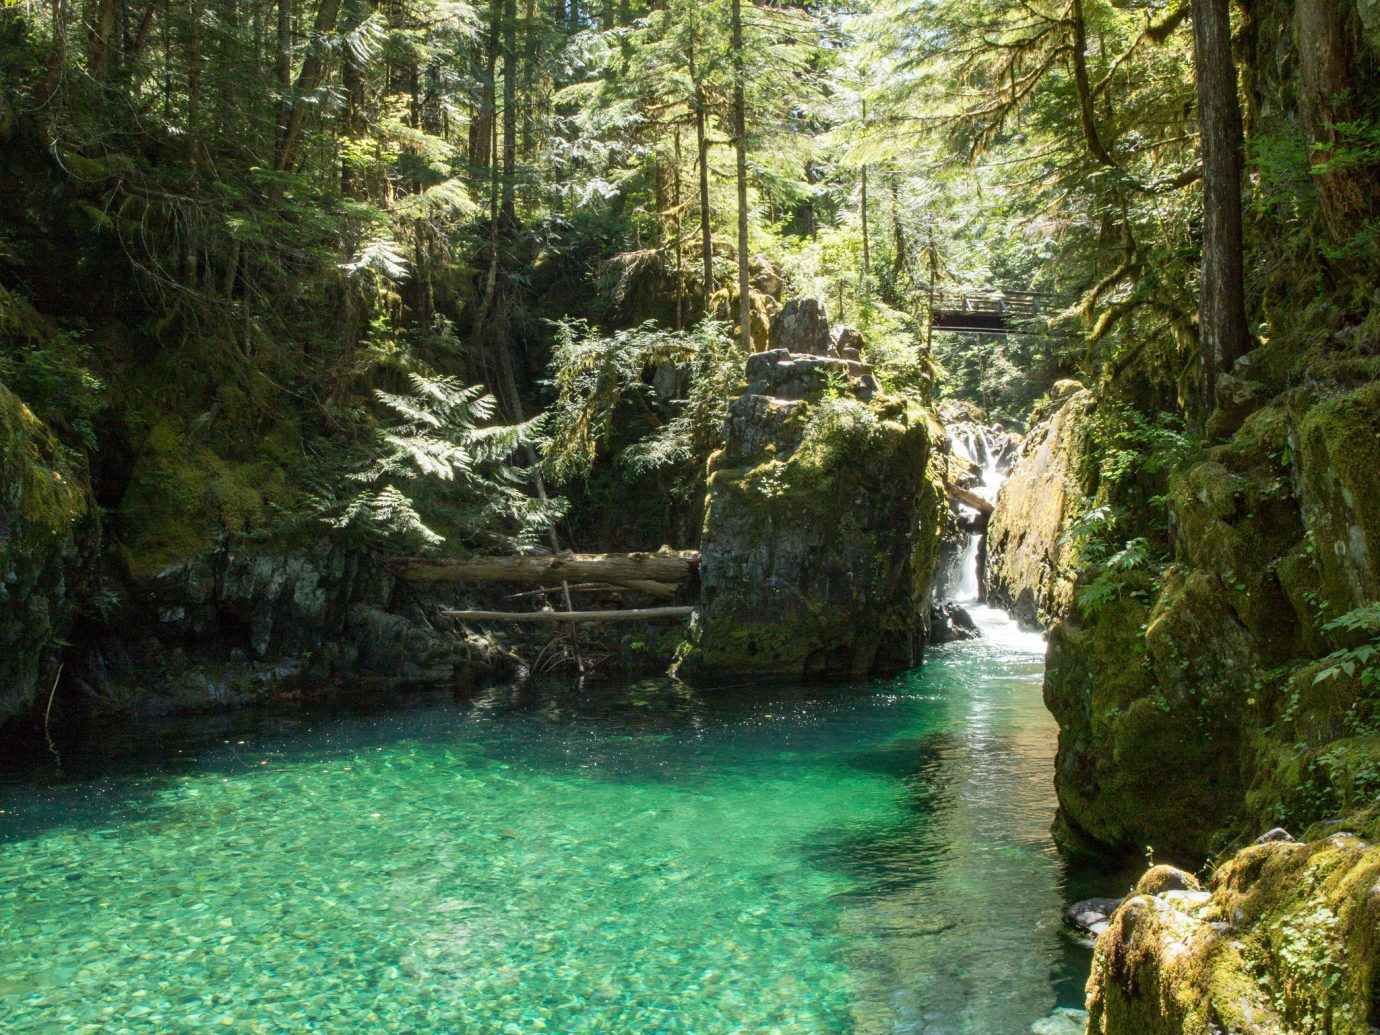 Trip Ideas tree outdoor body of water wilderness ecosystem creek watercourse stream Forest River plant woodland water feature valley Waterfall Lake rainforest trail surrounded